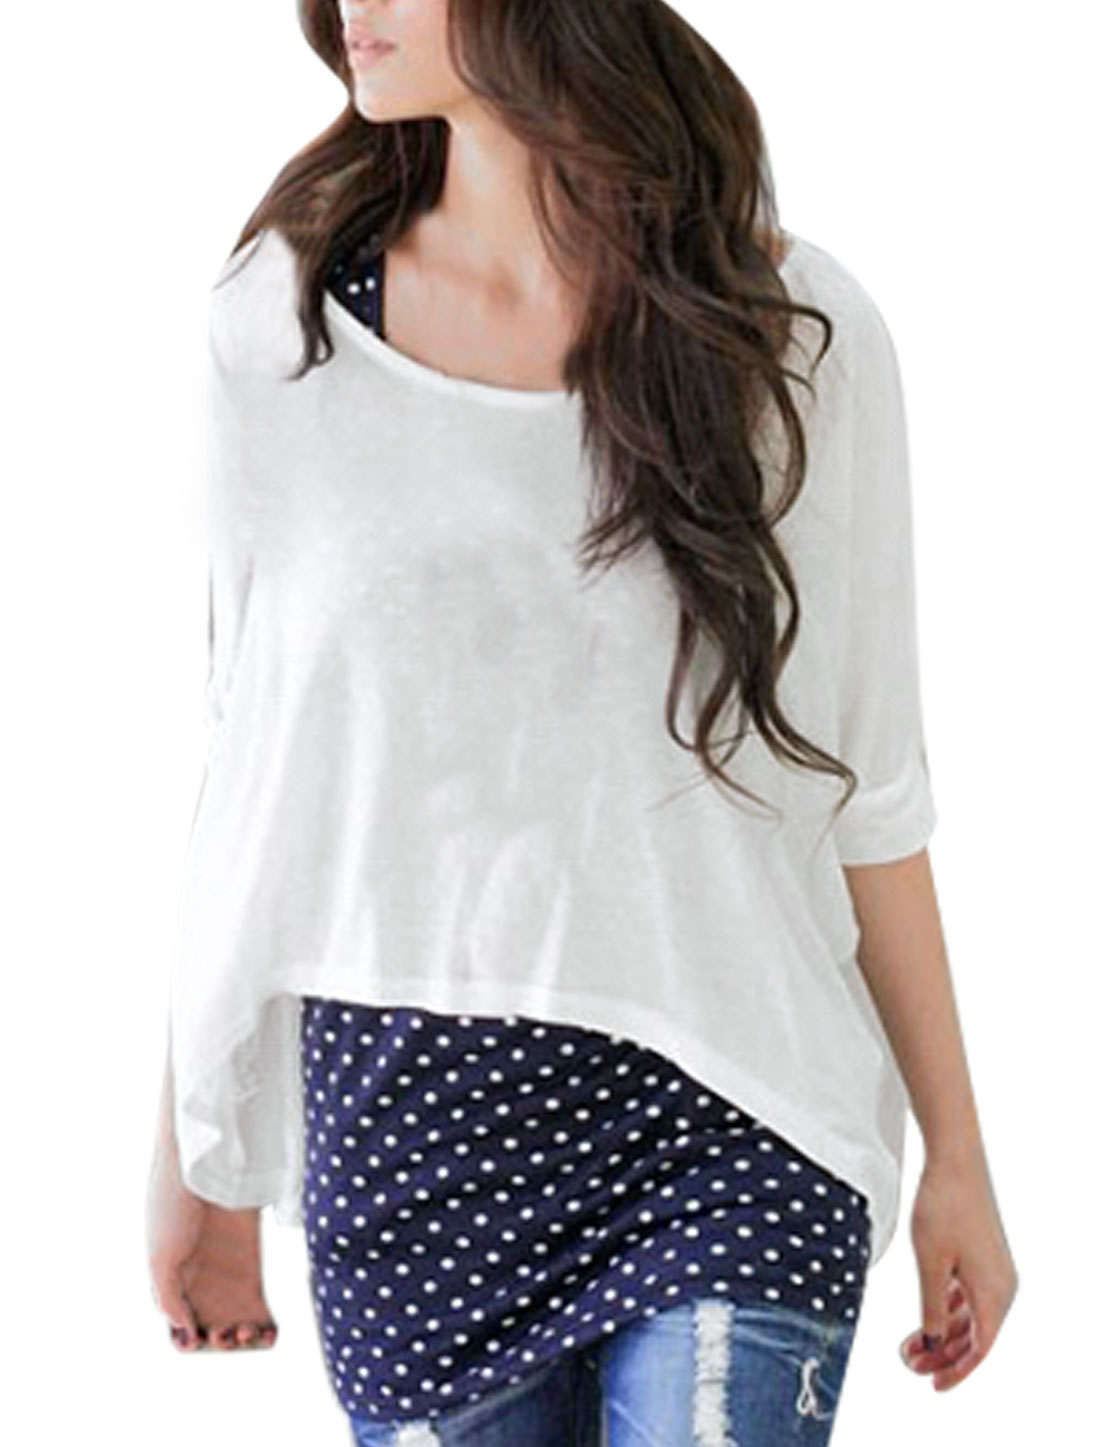 White Scoop Neck Half Bat Wing Sleeve Shirt w Dots Tank Top XS for Women